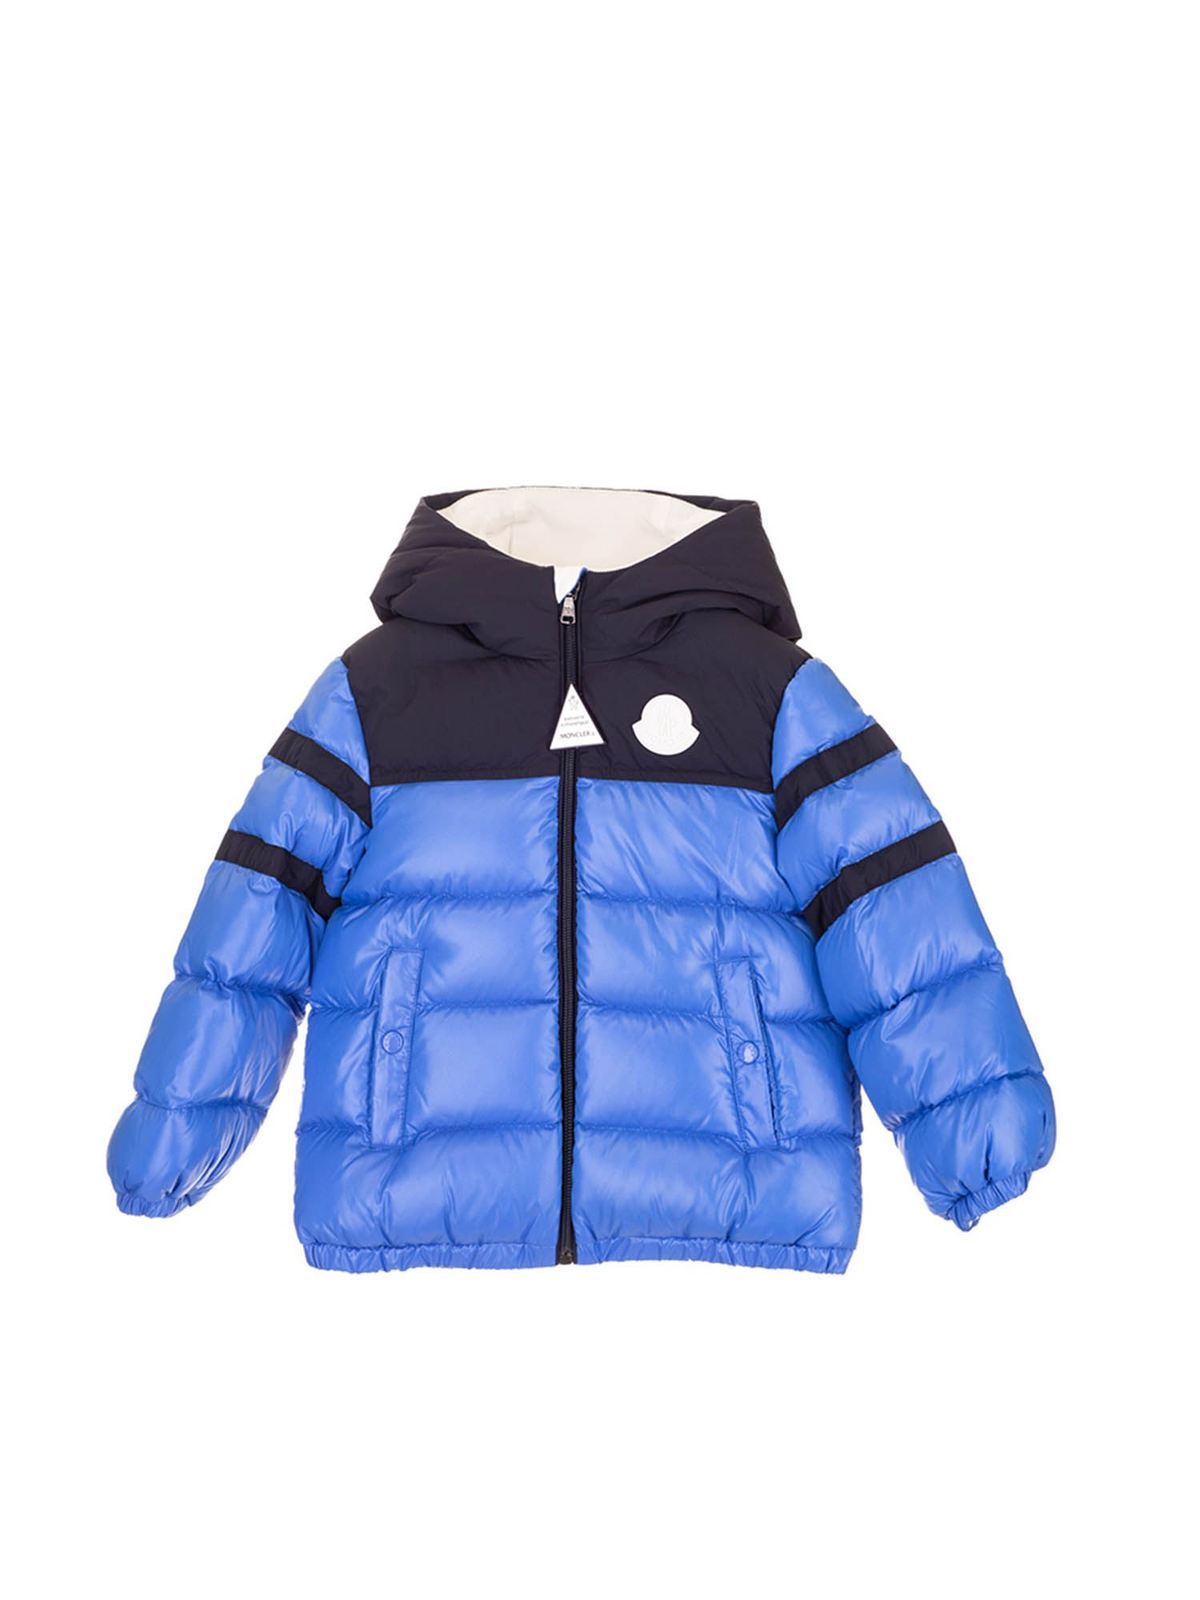 Moncler Jr Downs TWO-TONE LOGO DOWN JACKET IN BLUE AND BLACK